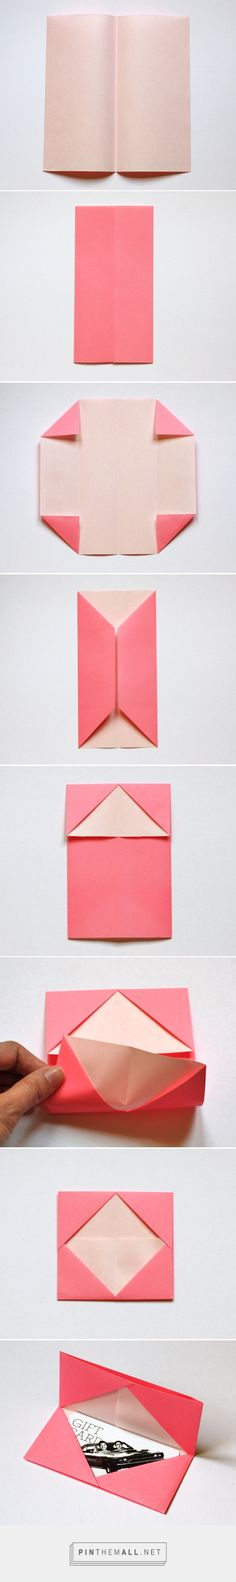 How to make an origami business card holder | How About Orange - created via http://pinthemall.net